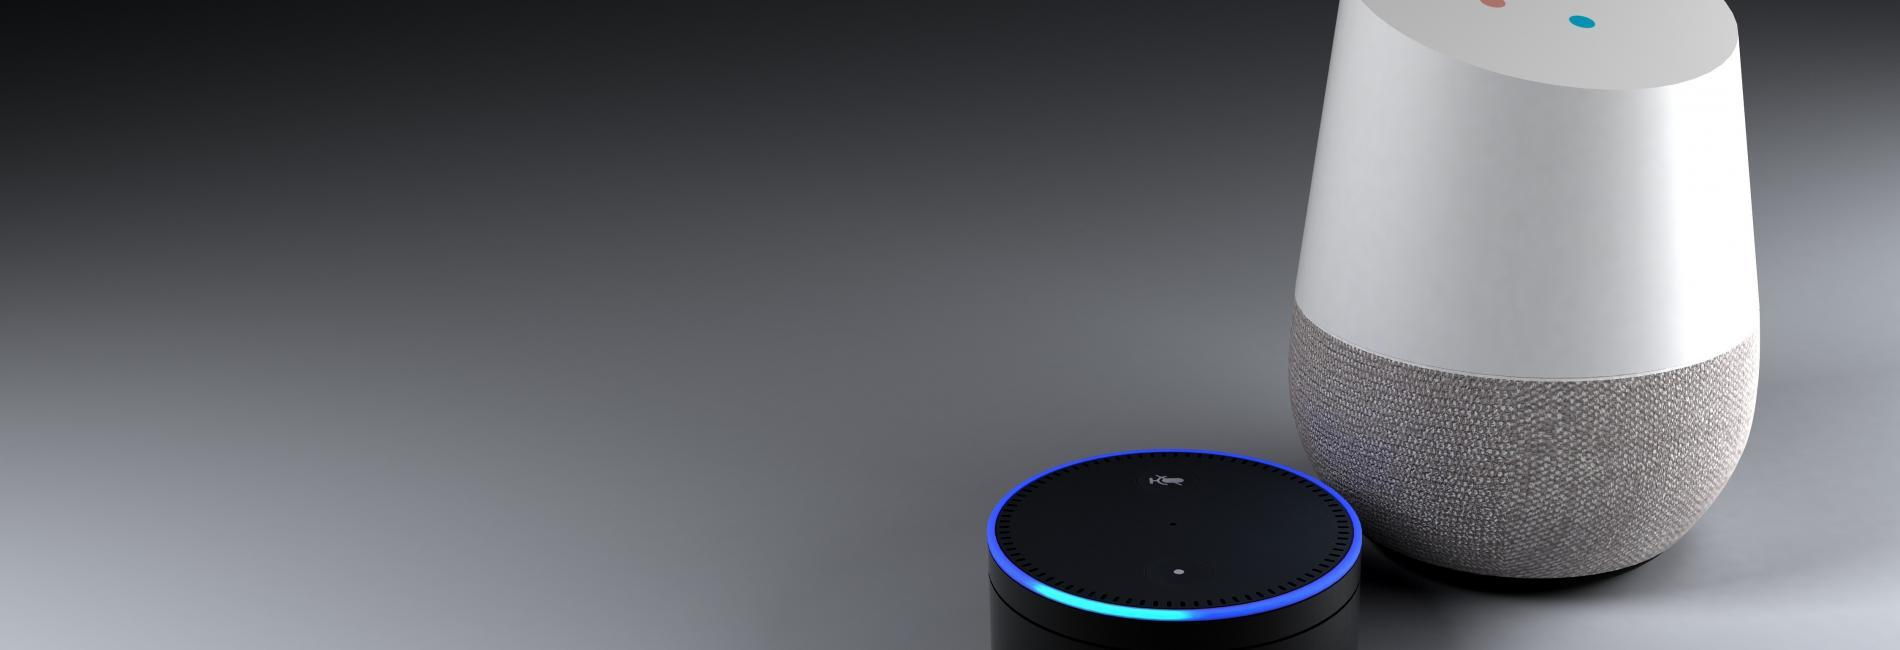 3d rendering of voice recognition system dark backround